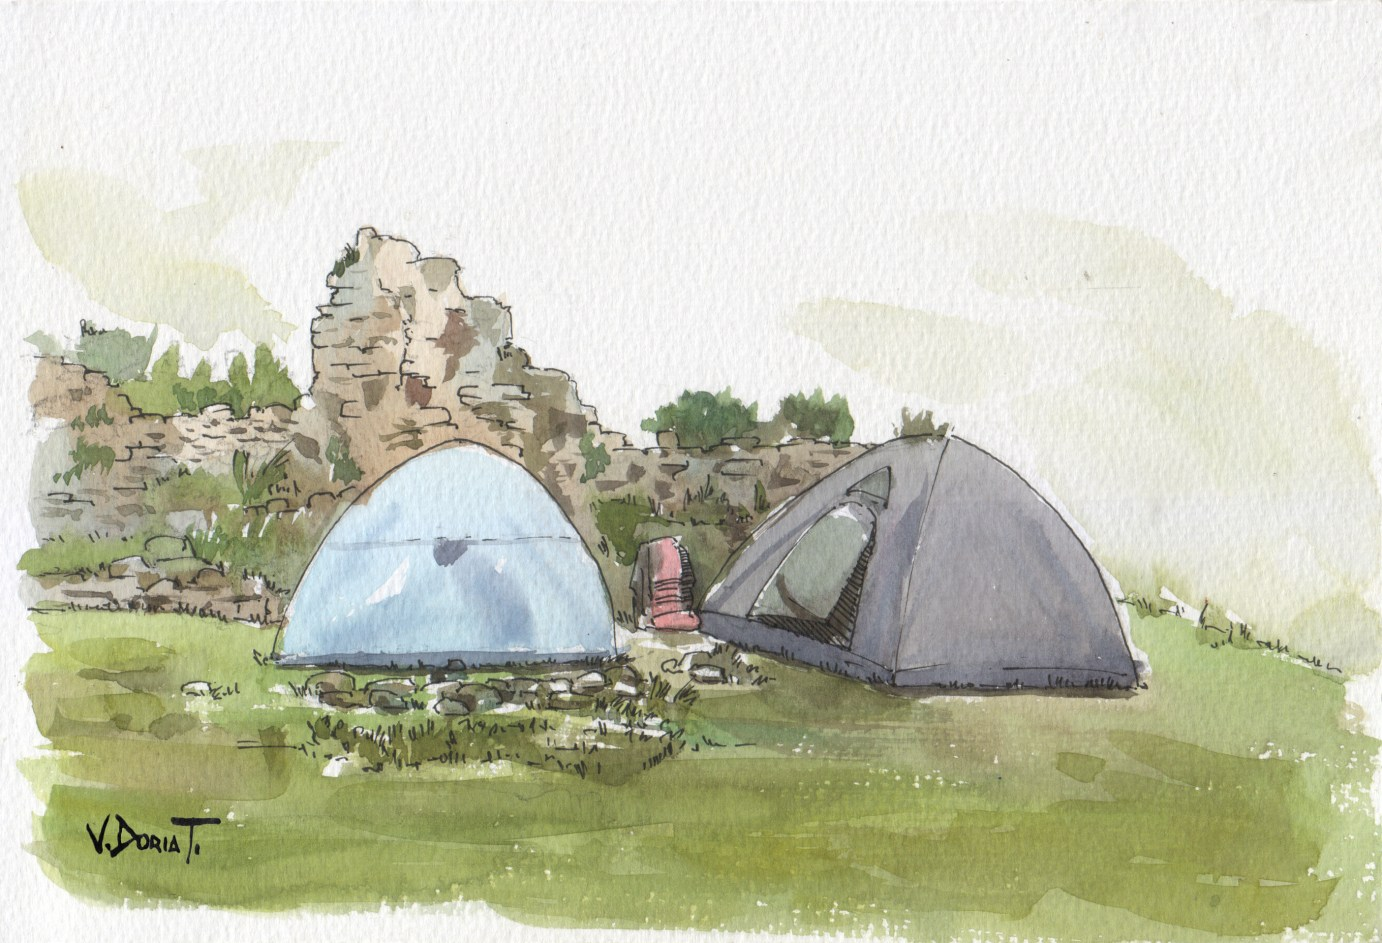 i made these sketches during a camping in an archaeological site in San Juan de Iris (3700 m.a.s.l.)